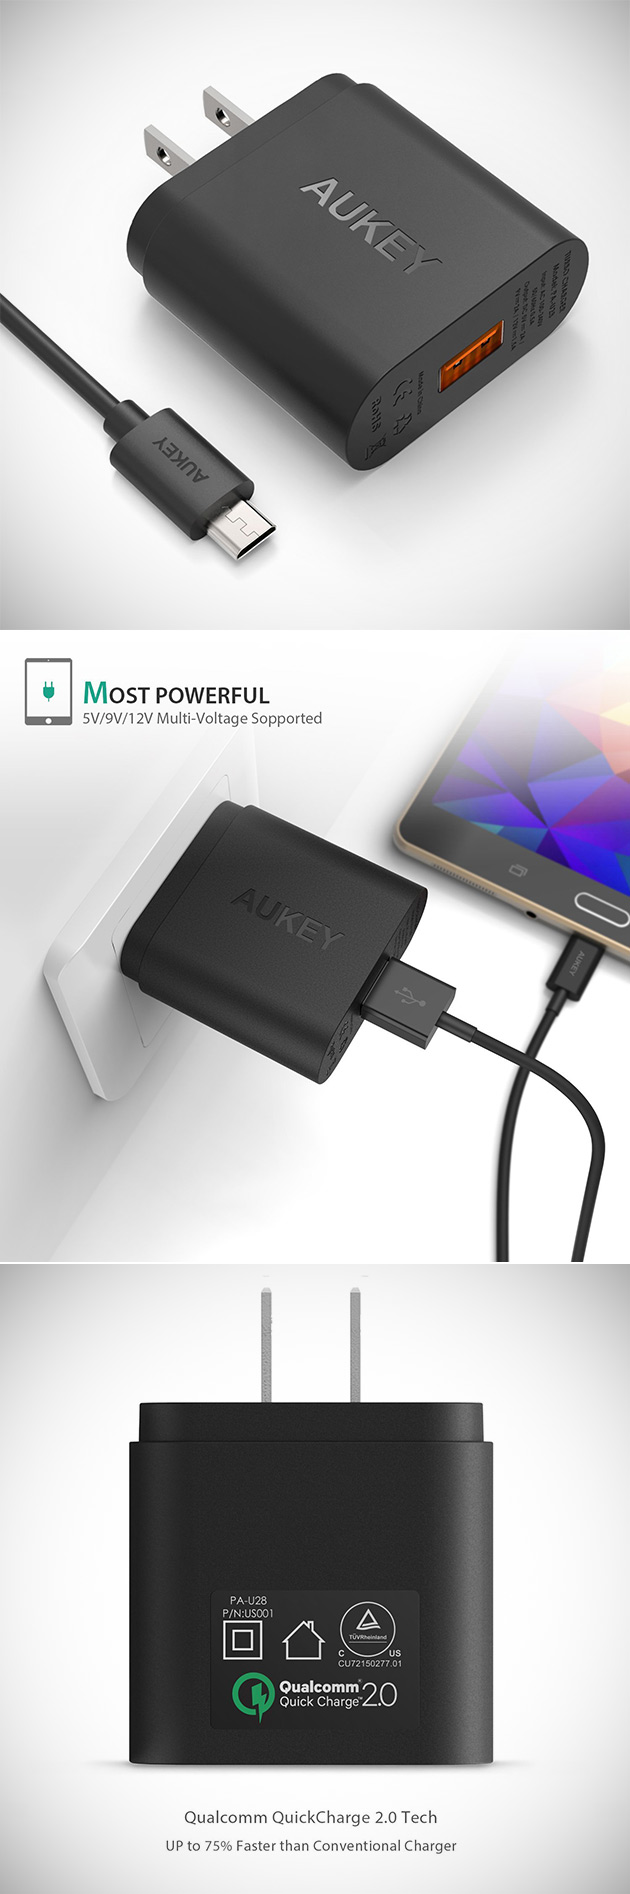 Aukey Quick Charge 2.0